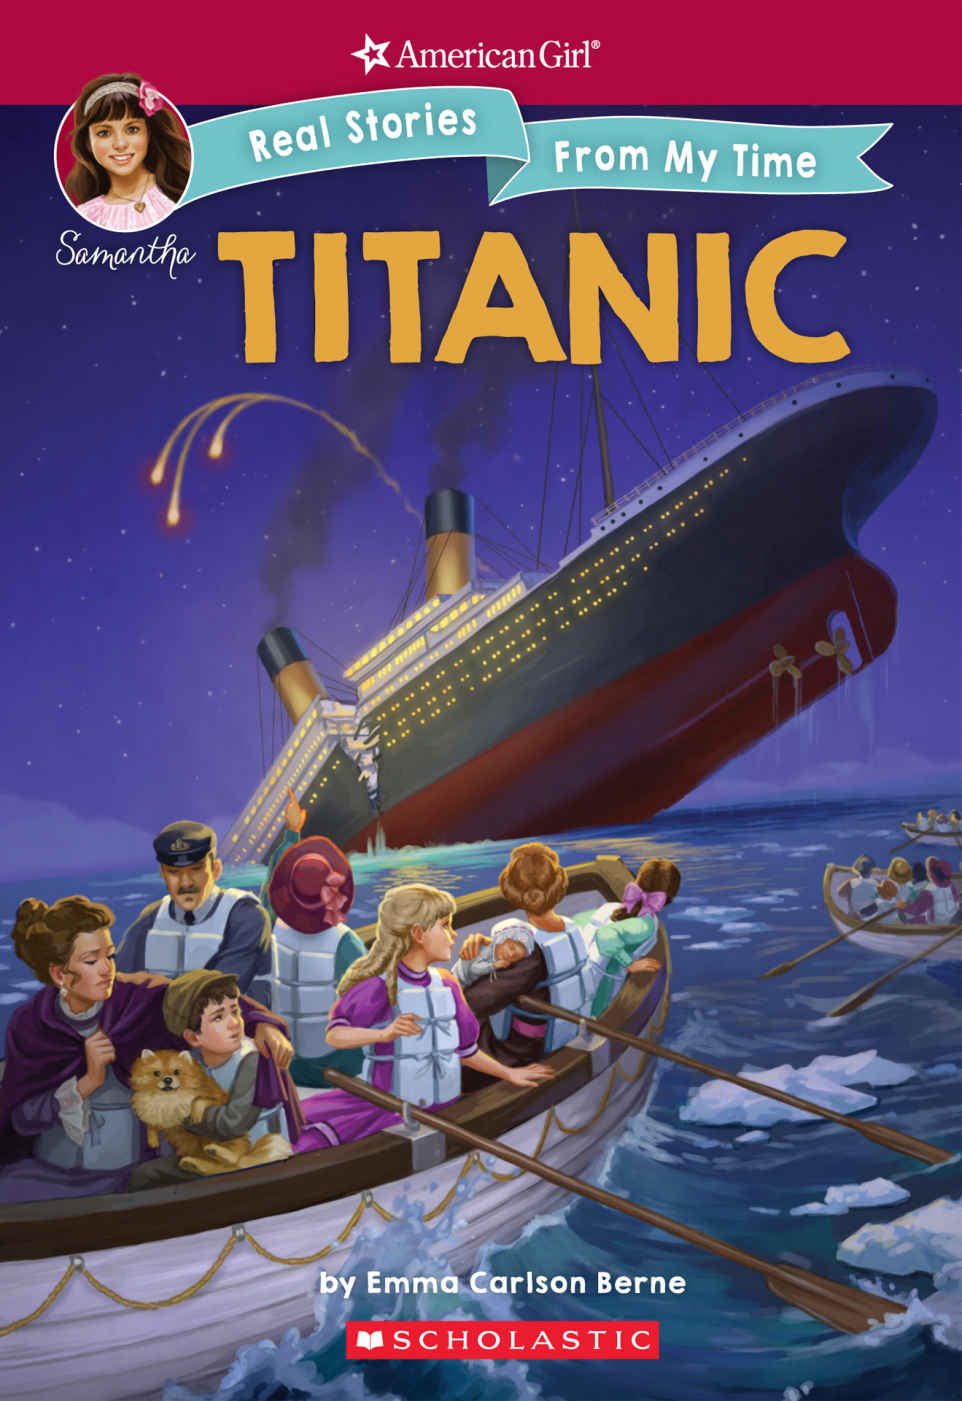 Real Stories From My Time: The Titanic